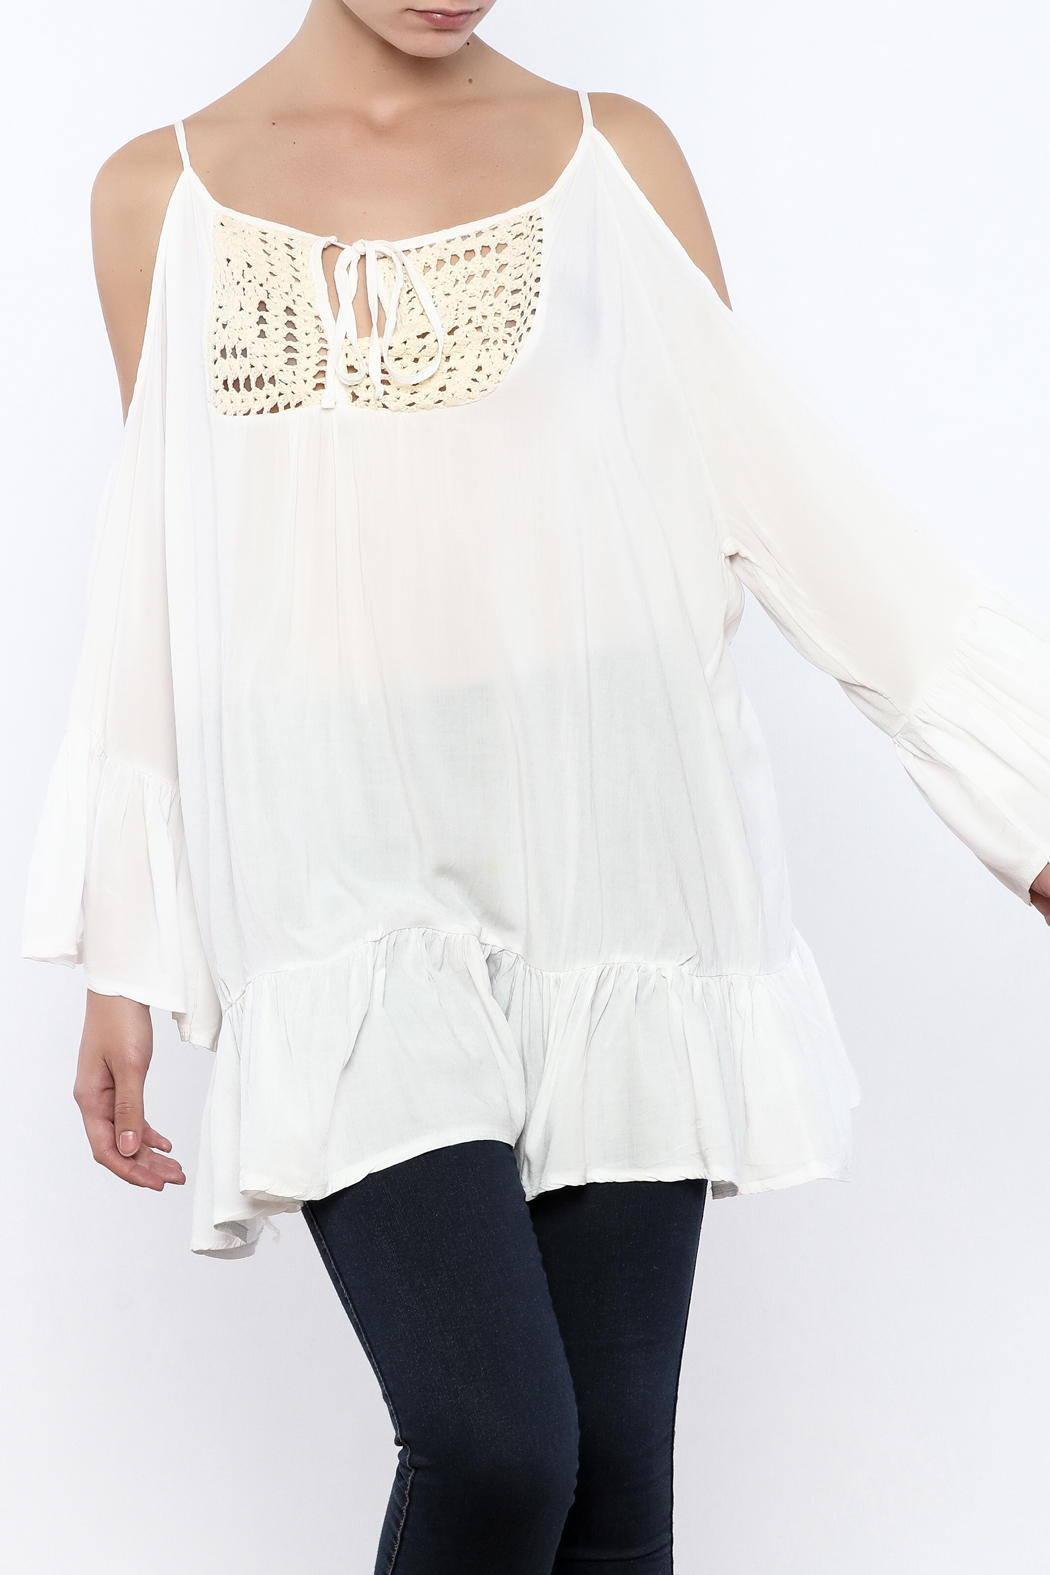 Gypsy Junkies Boho Crochet Top - Front Cropped Image